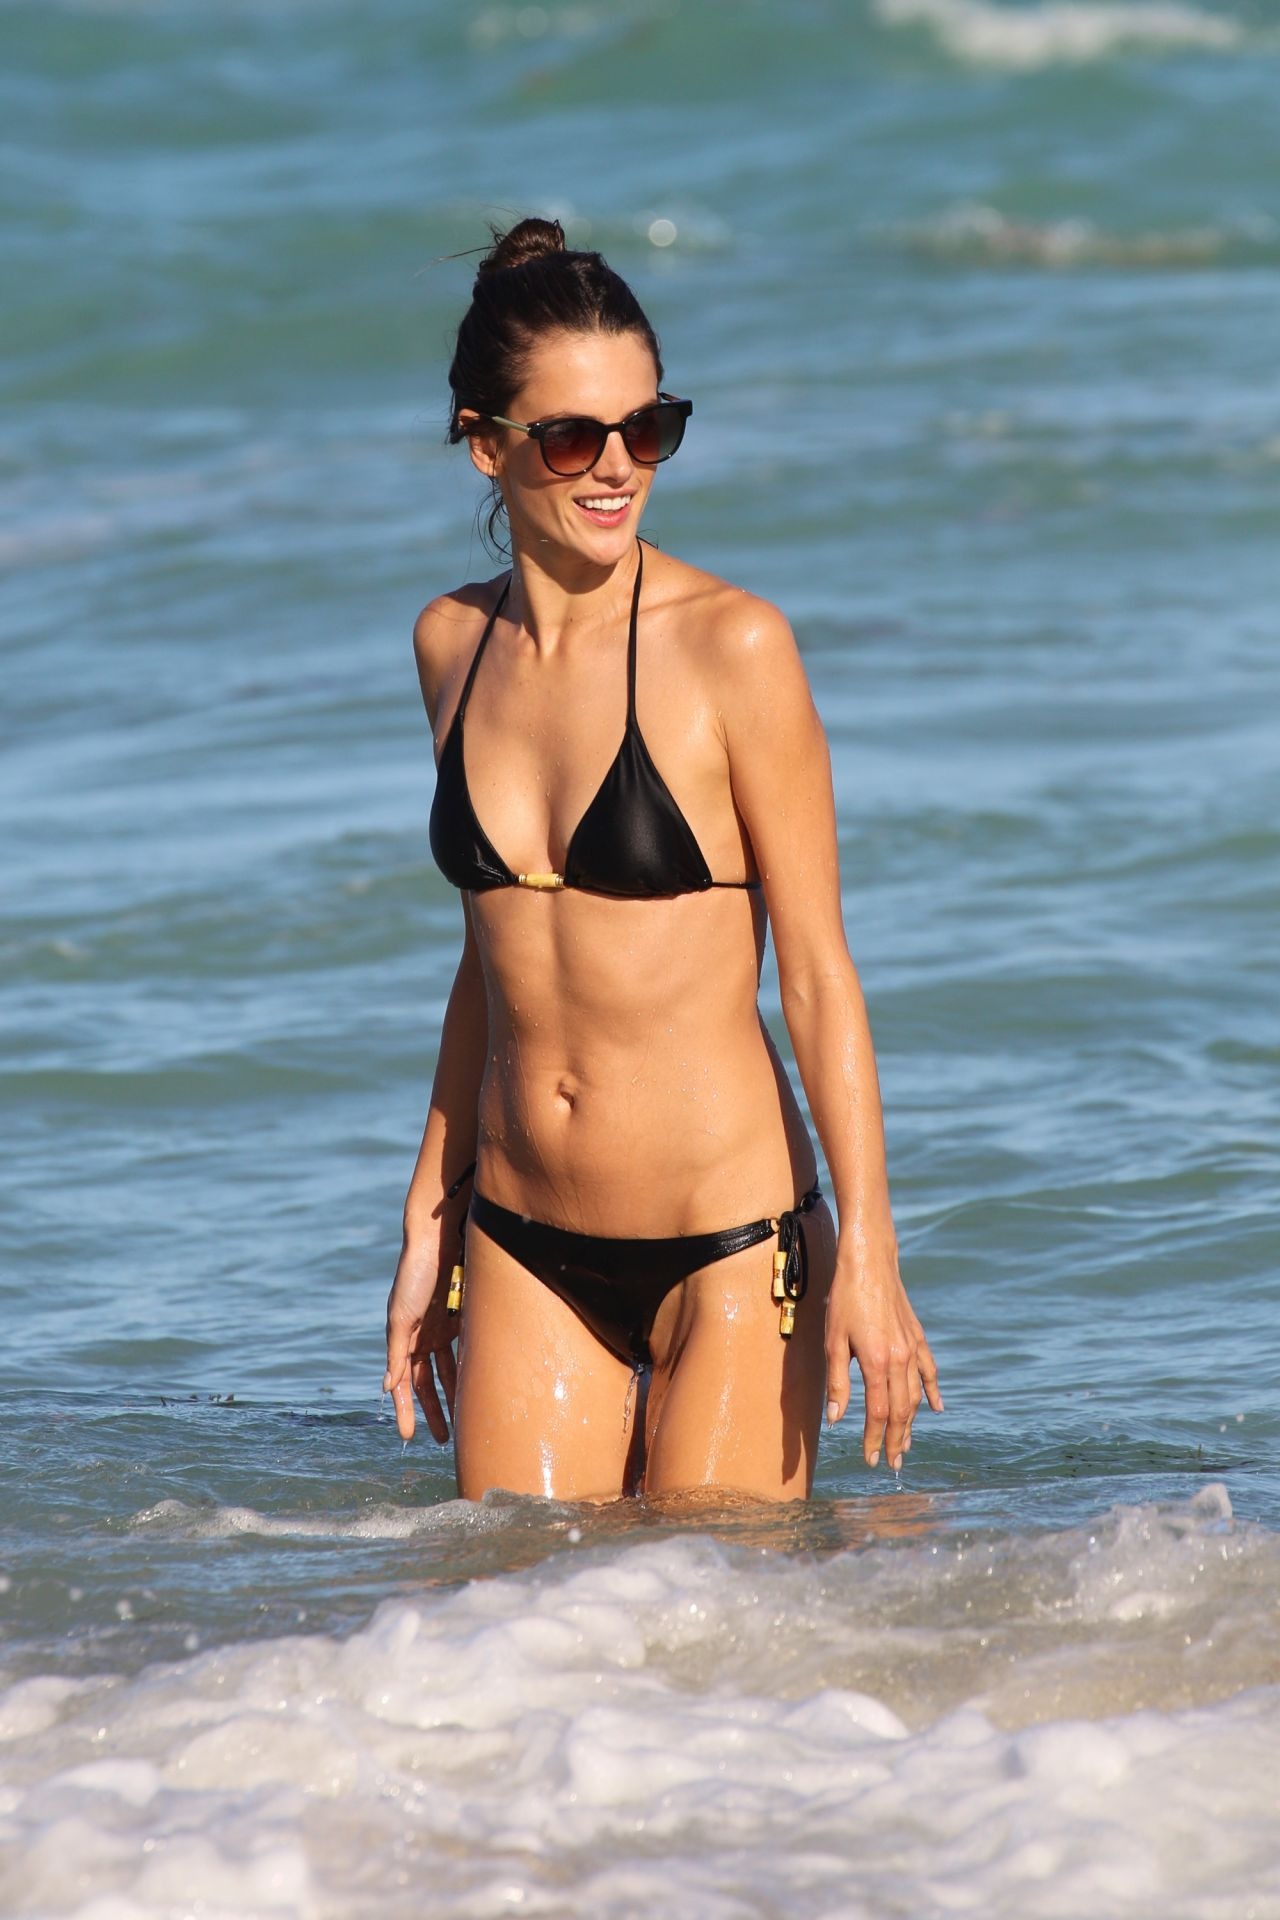 Alessandra Ambrosio In A At The Beach Miami December 2017